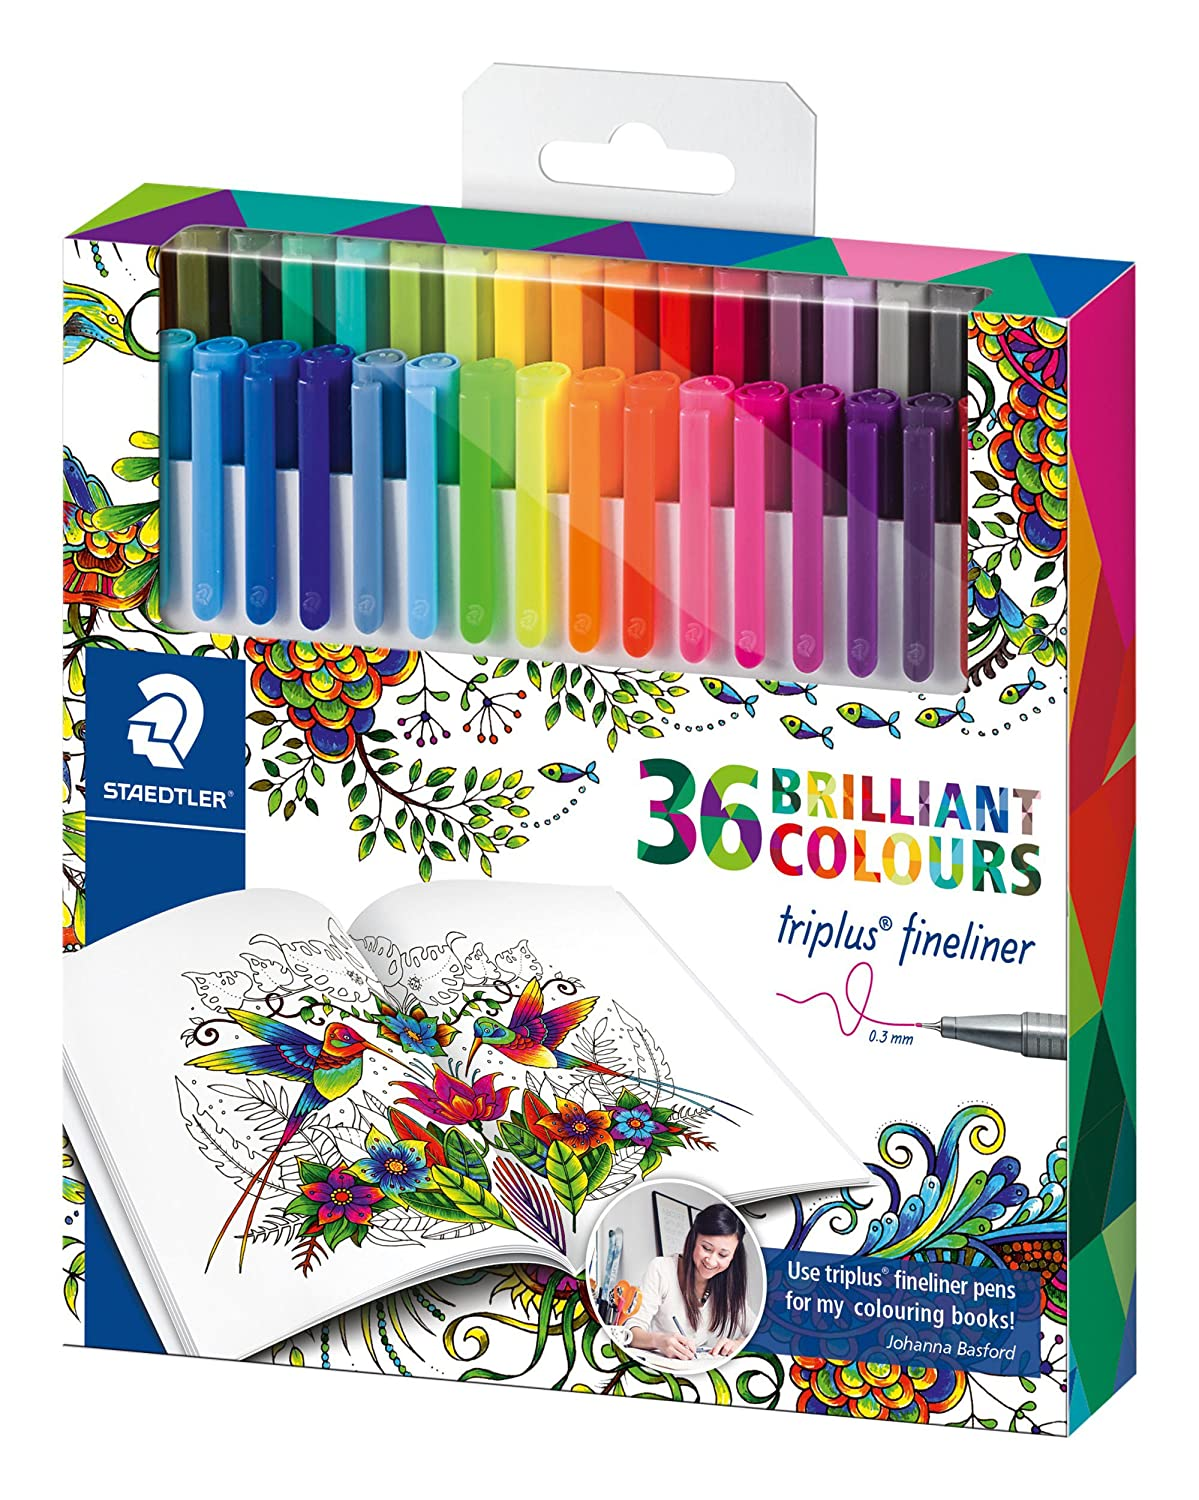 Staedtler Johanna Basford Triplus Fineliner Pens For Adult Coloring Books Set Of 36 Amazonca Office Products